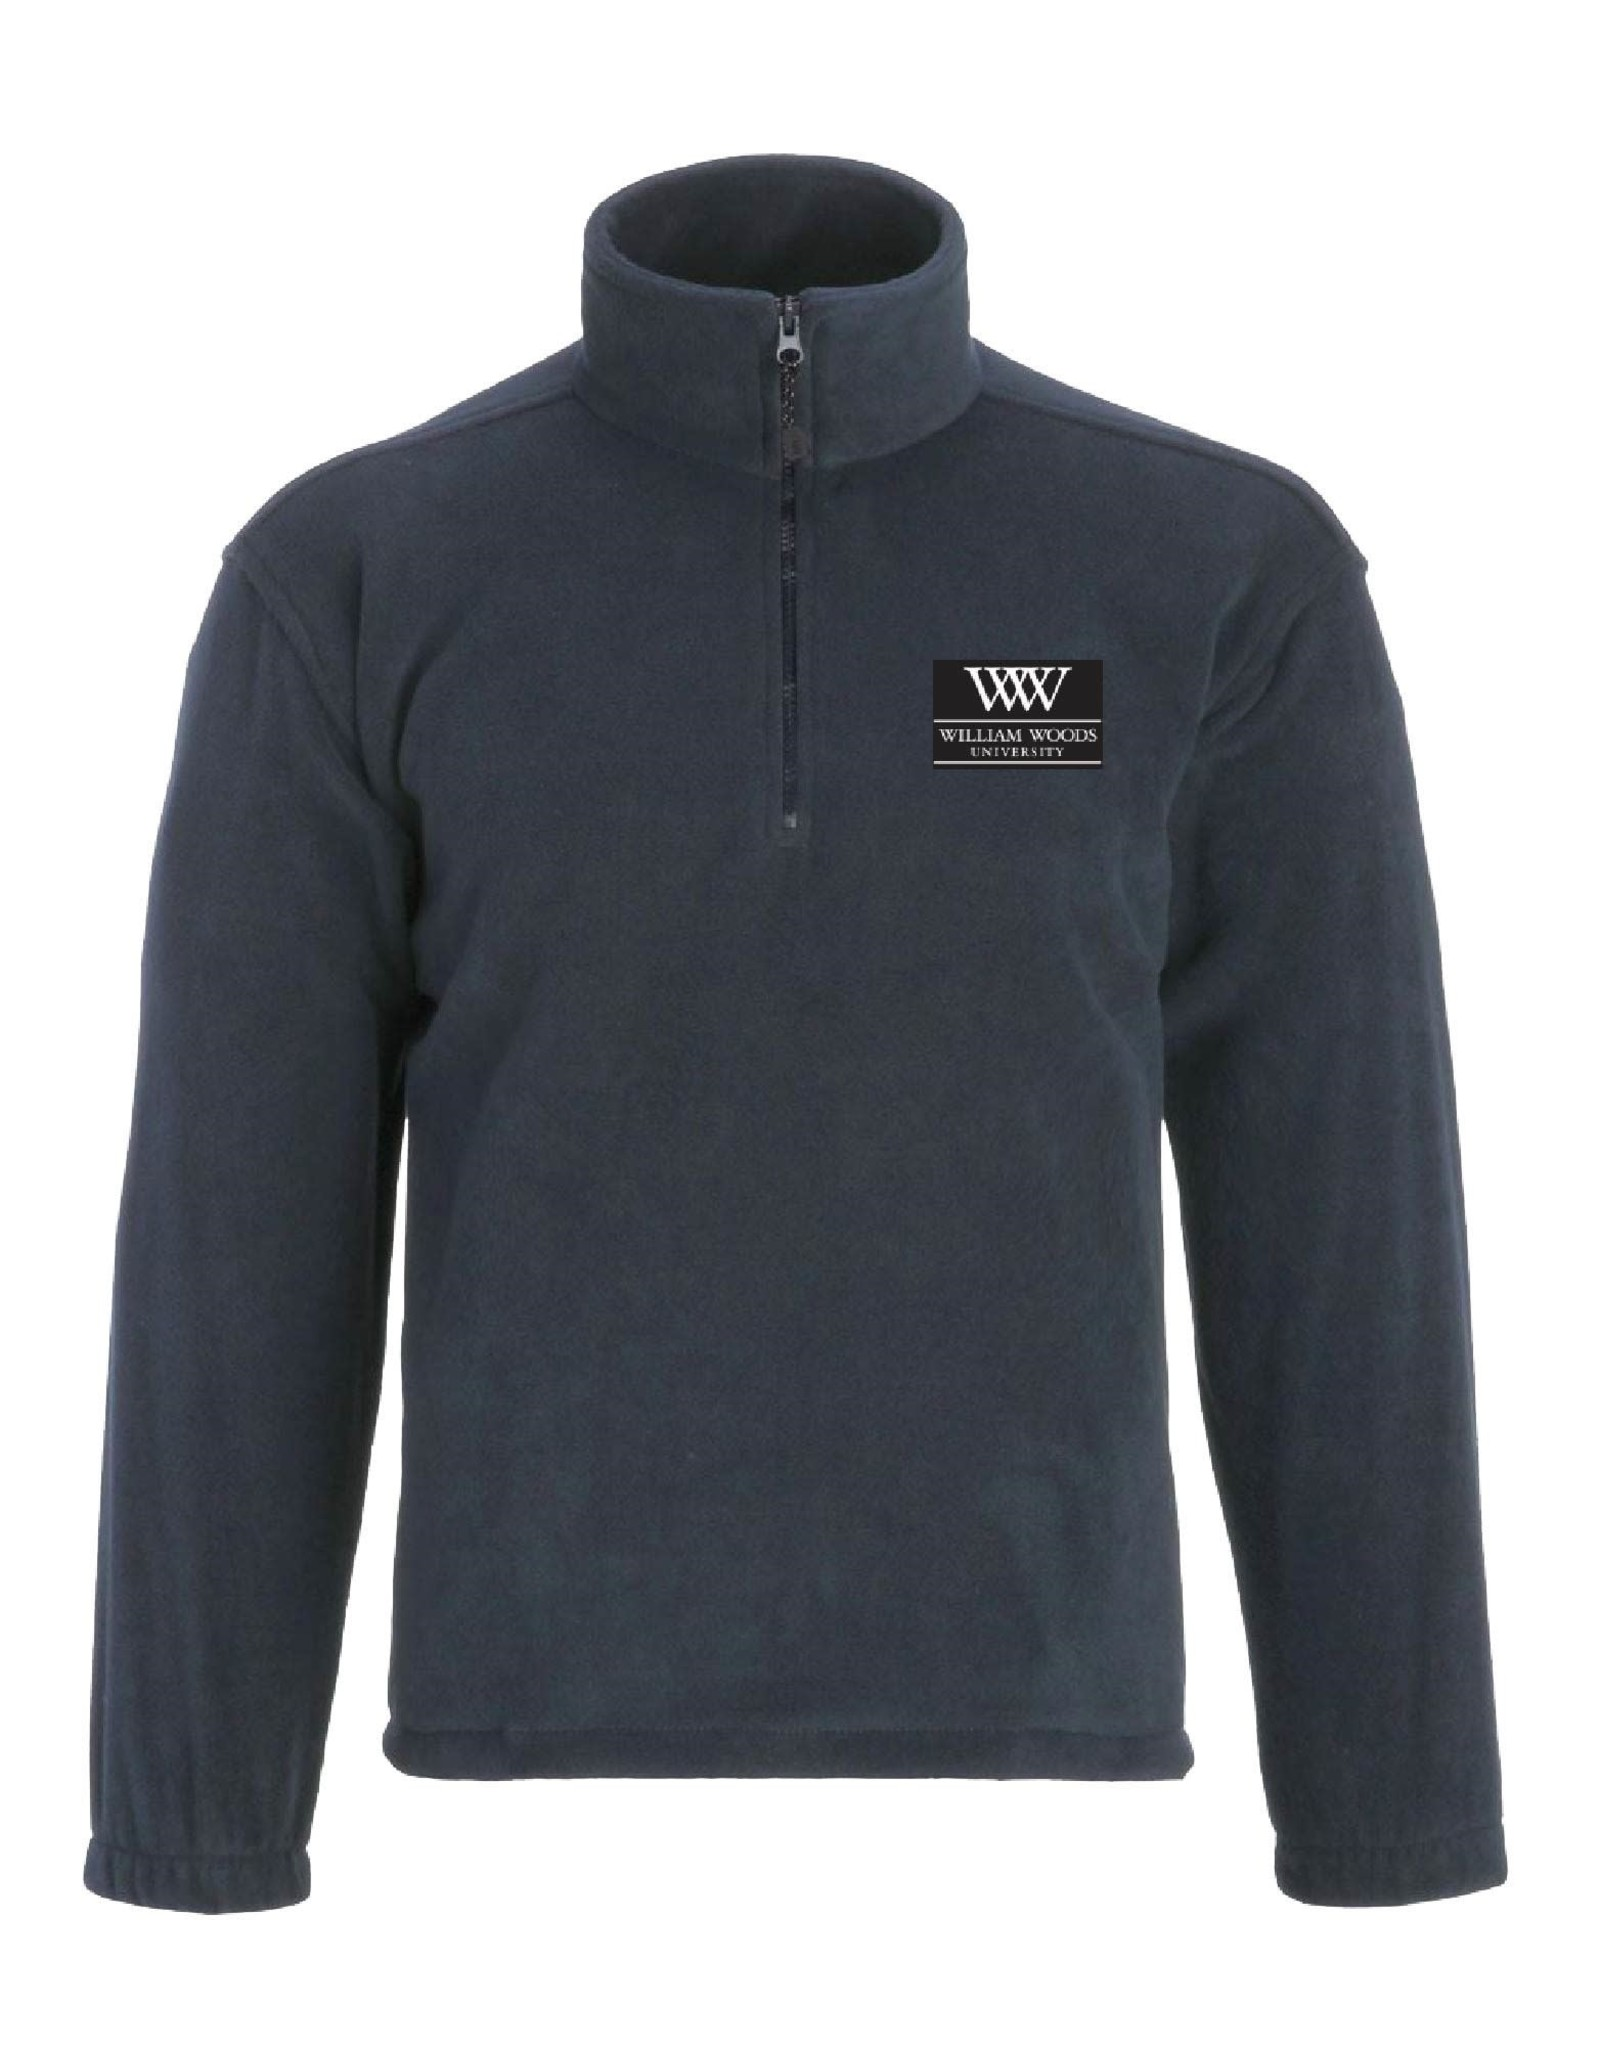 Unisex 1/4 Zip Fleece Pullover